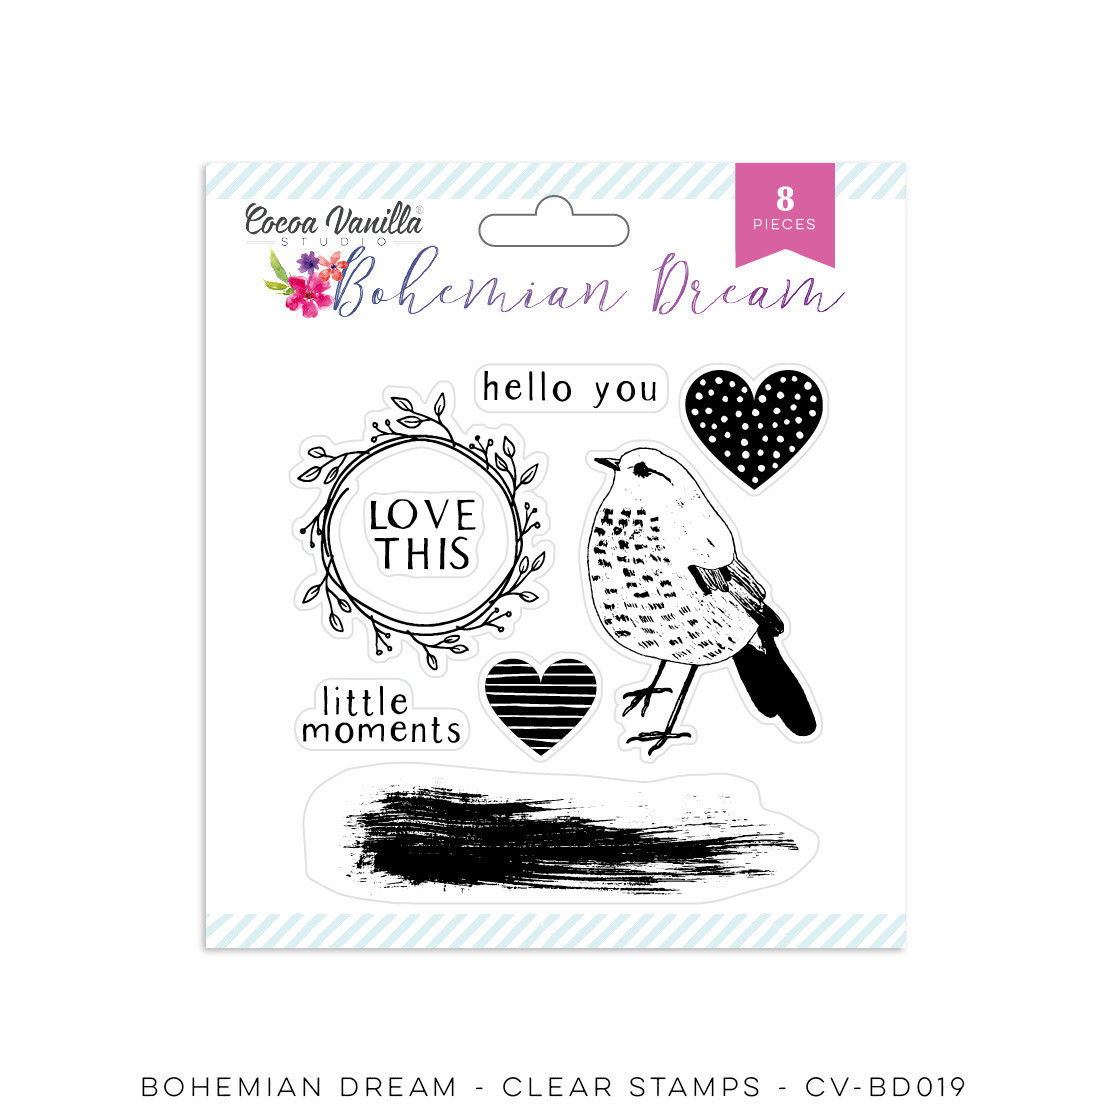 Cocoa Vanilla Bohemian Dream Clear Stamps